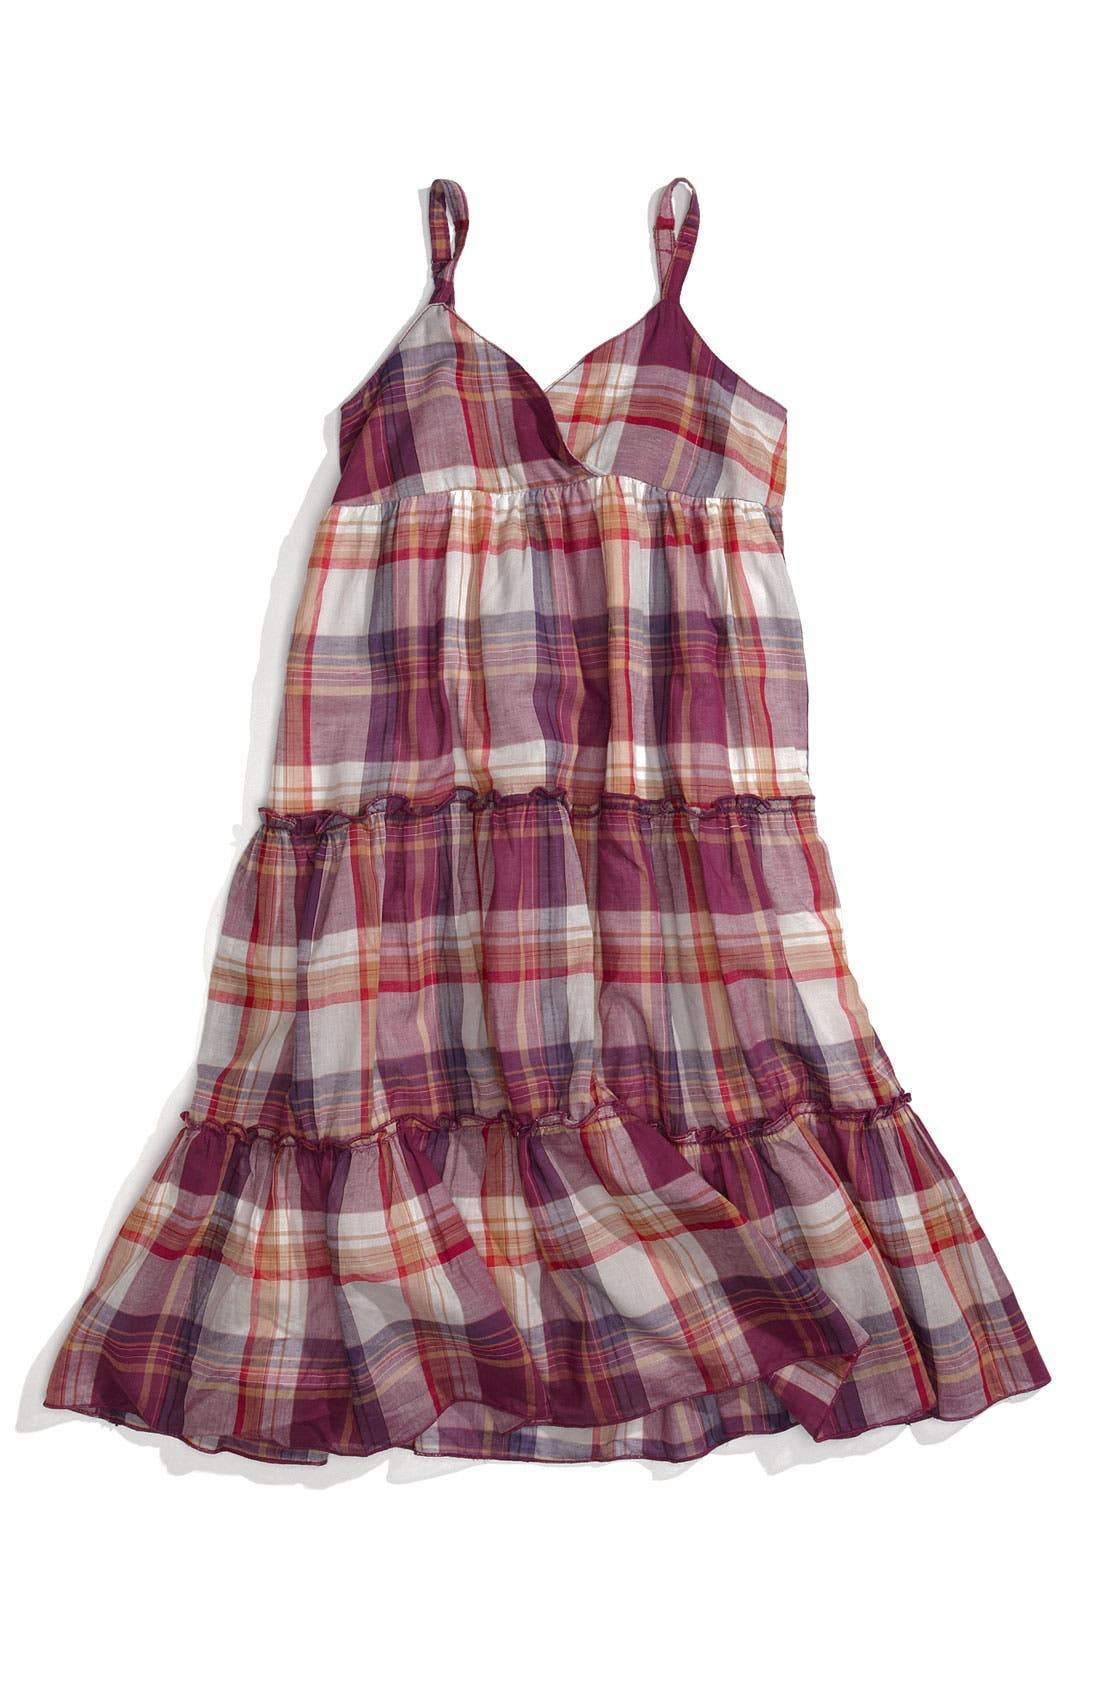 Alternate Image 1 Selected - Peek Plaid Sundress (Toddler, Little Girl & Big Girl)